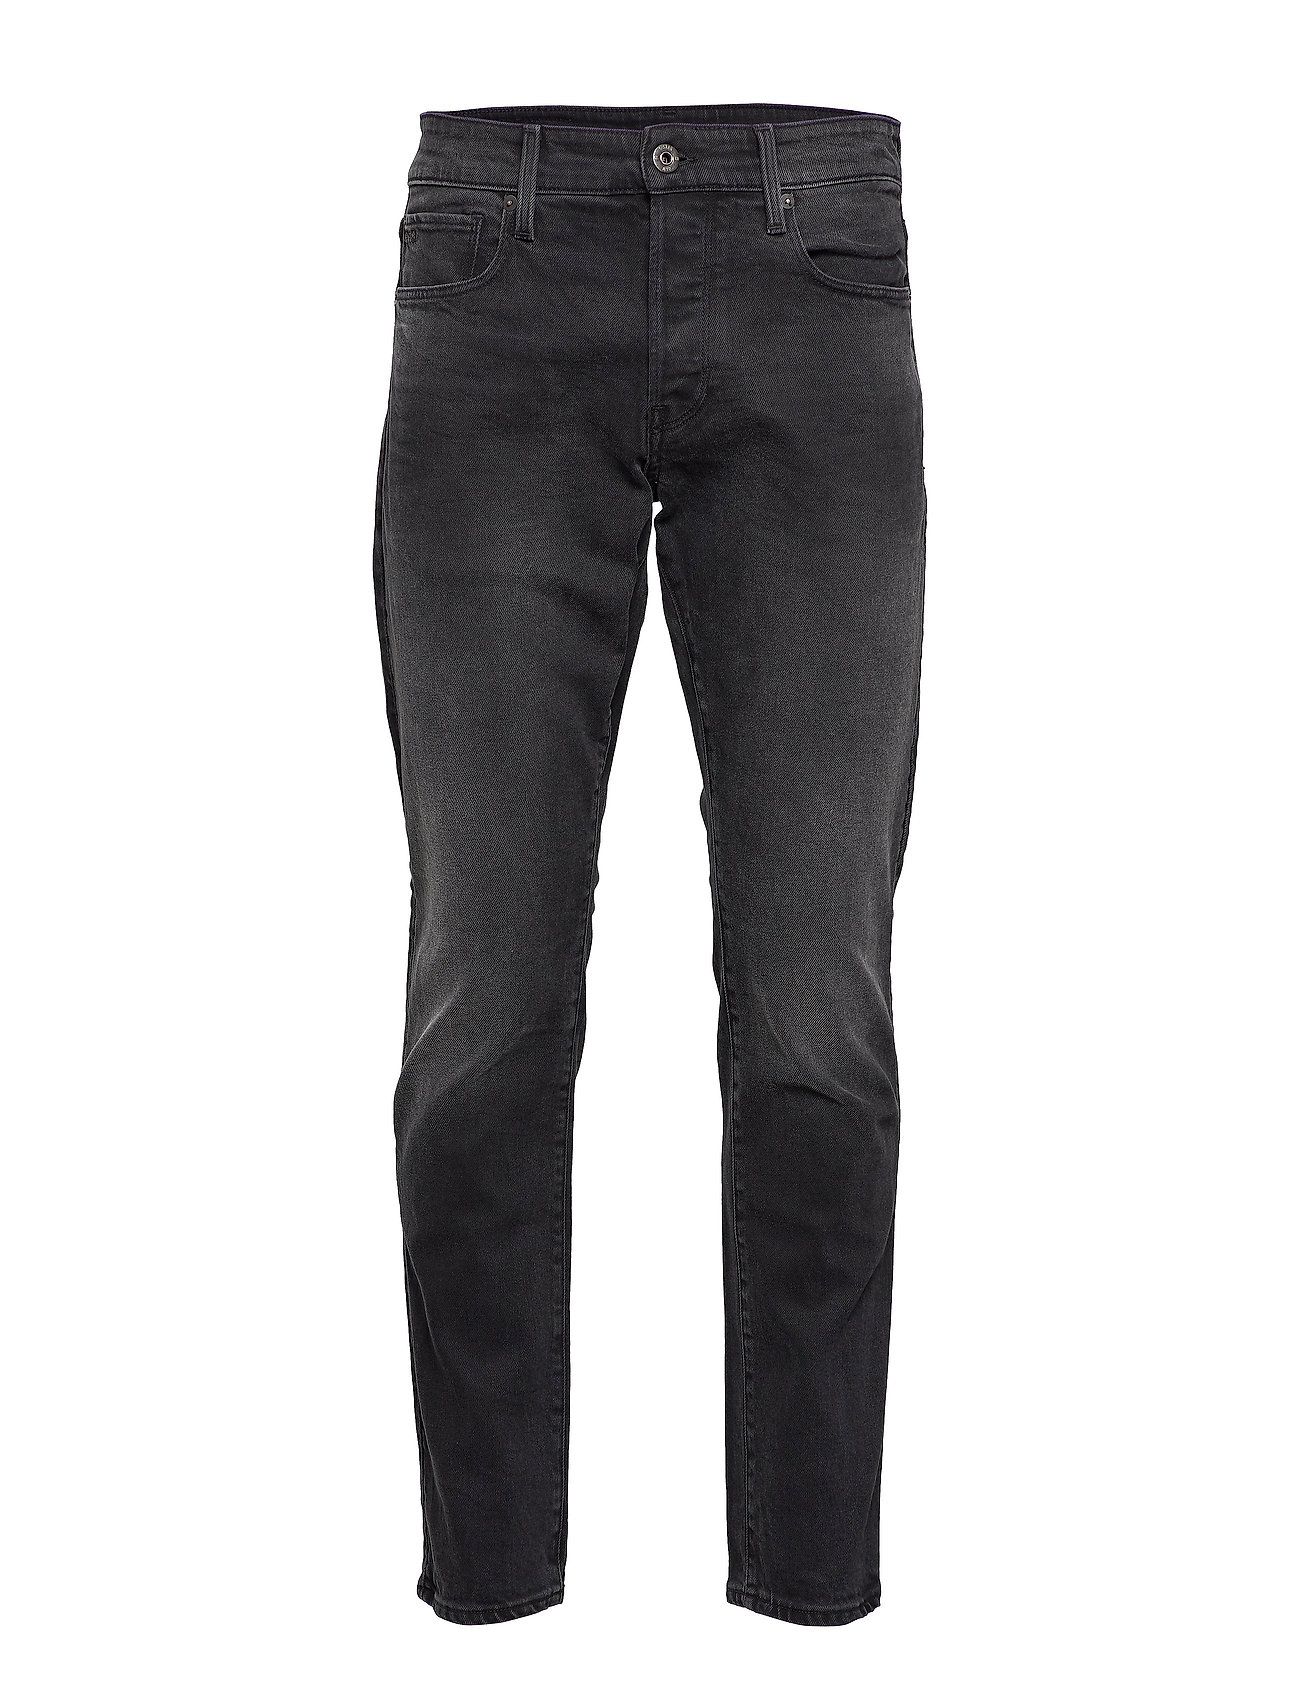 G-star RAW 3301 Tapered - FADED CHARCOAL